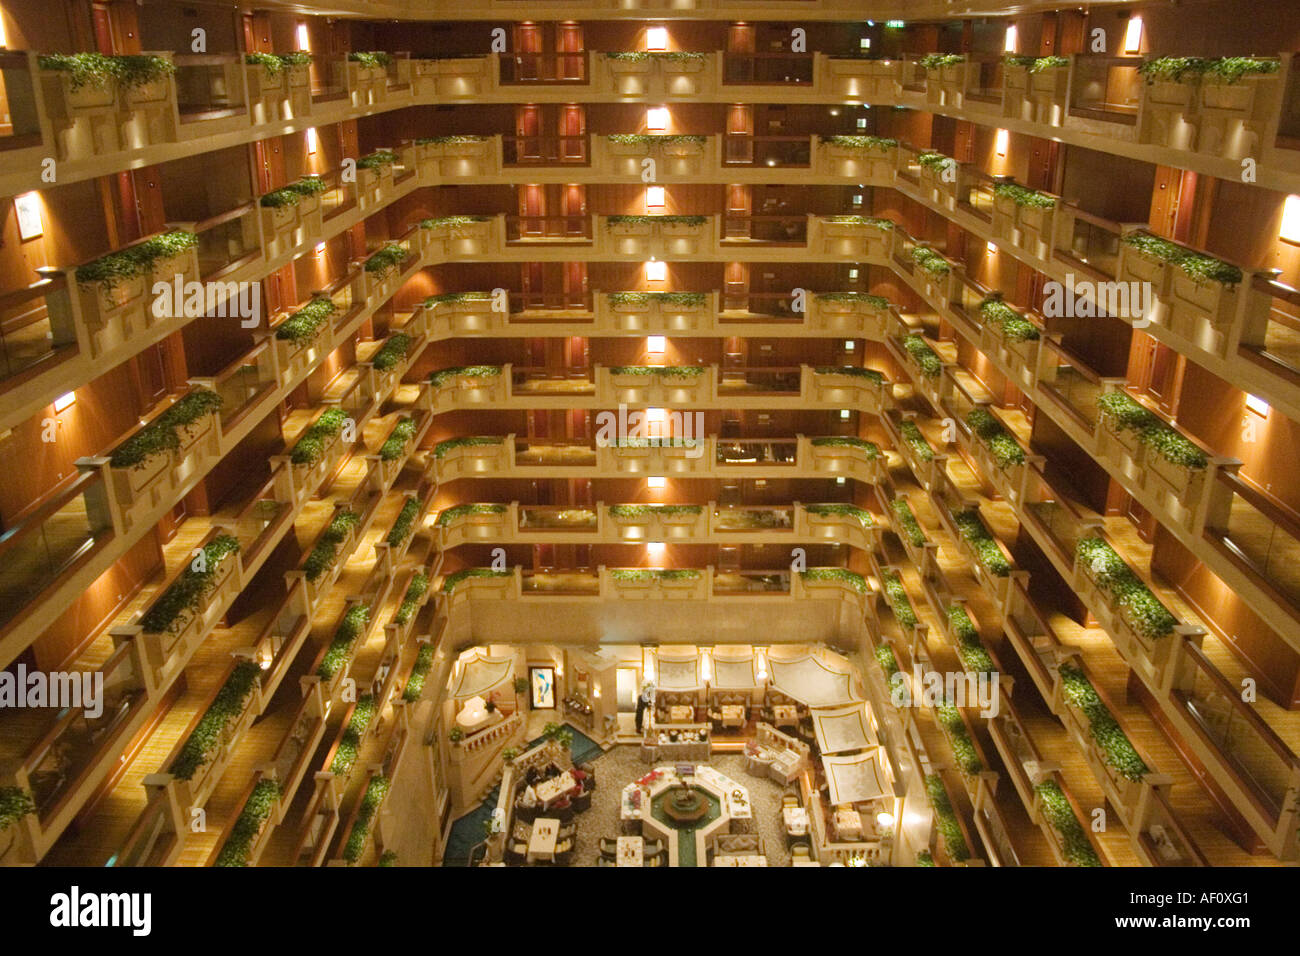 Interior Balconies In The Atrium At Hong Kong S Famous Royal Garden Hotel.